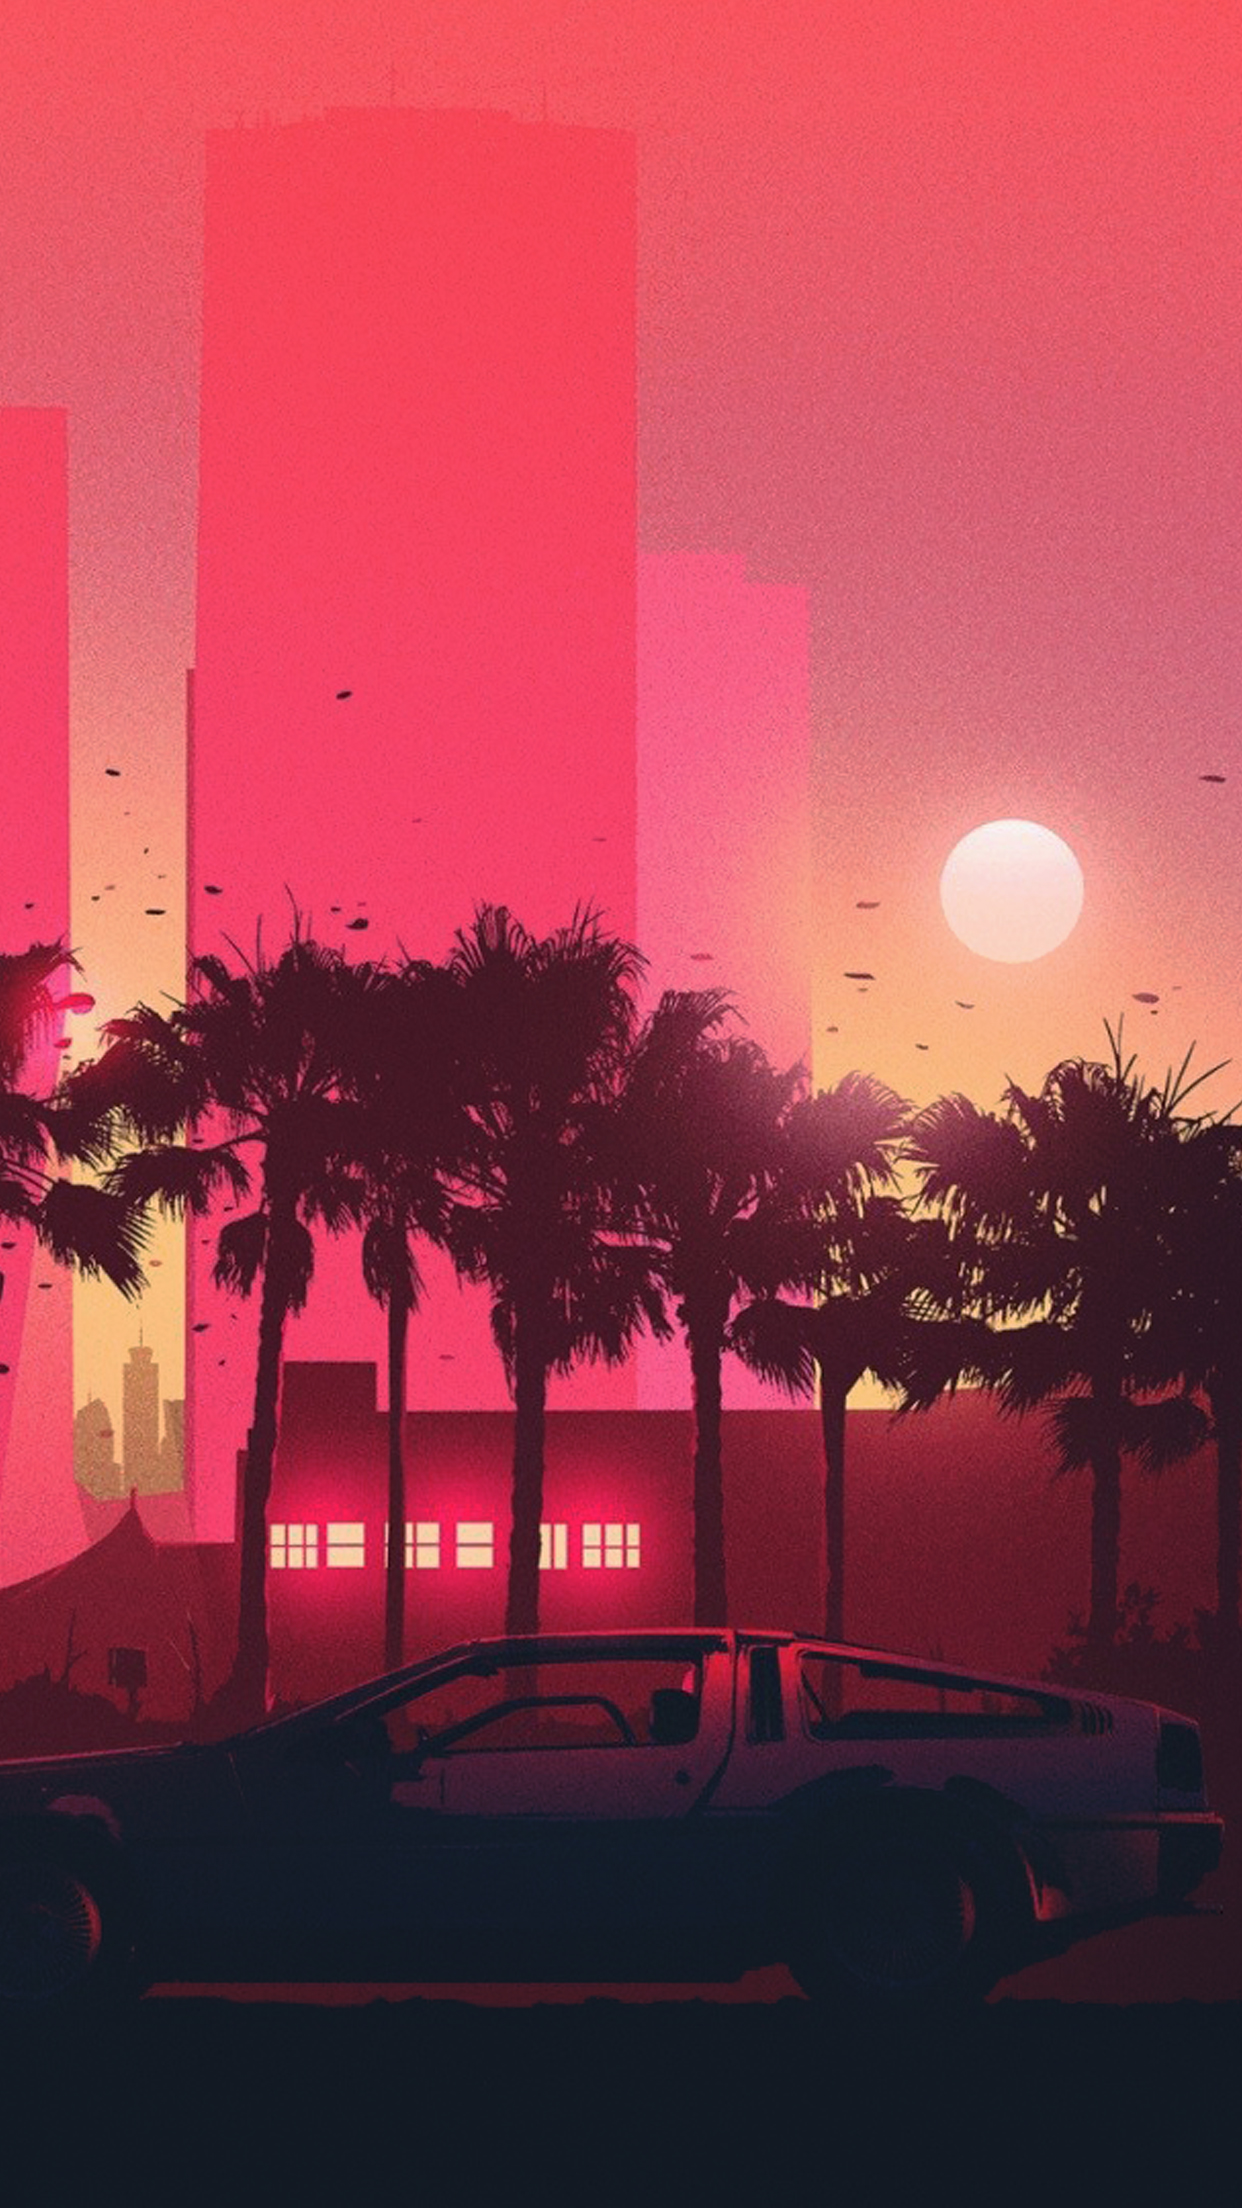 Ps4 Games Hd Wallpapers Wallpapers Of The Week Minimal Scenery